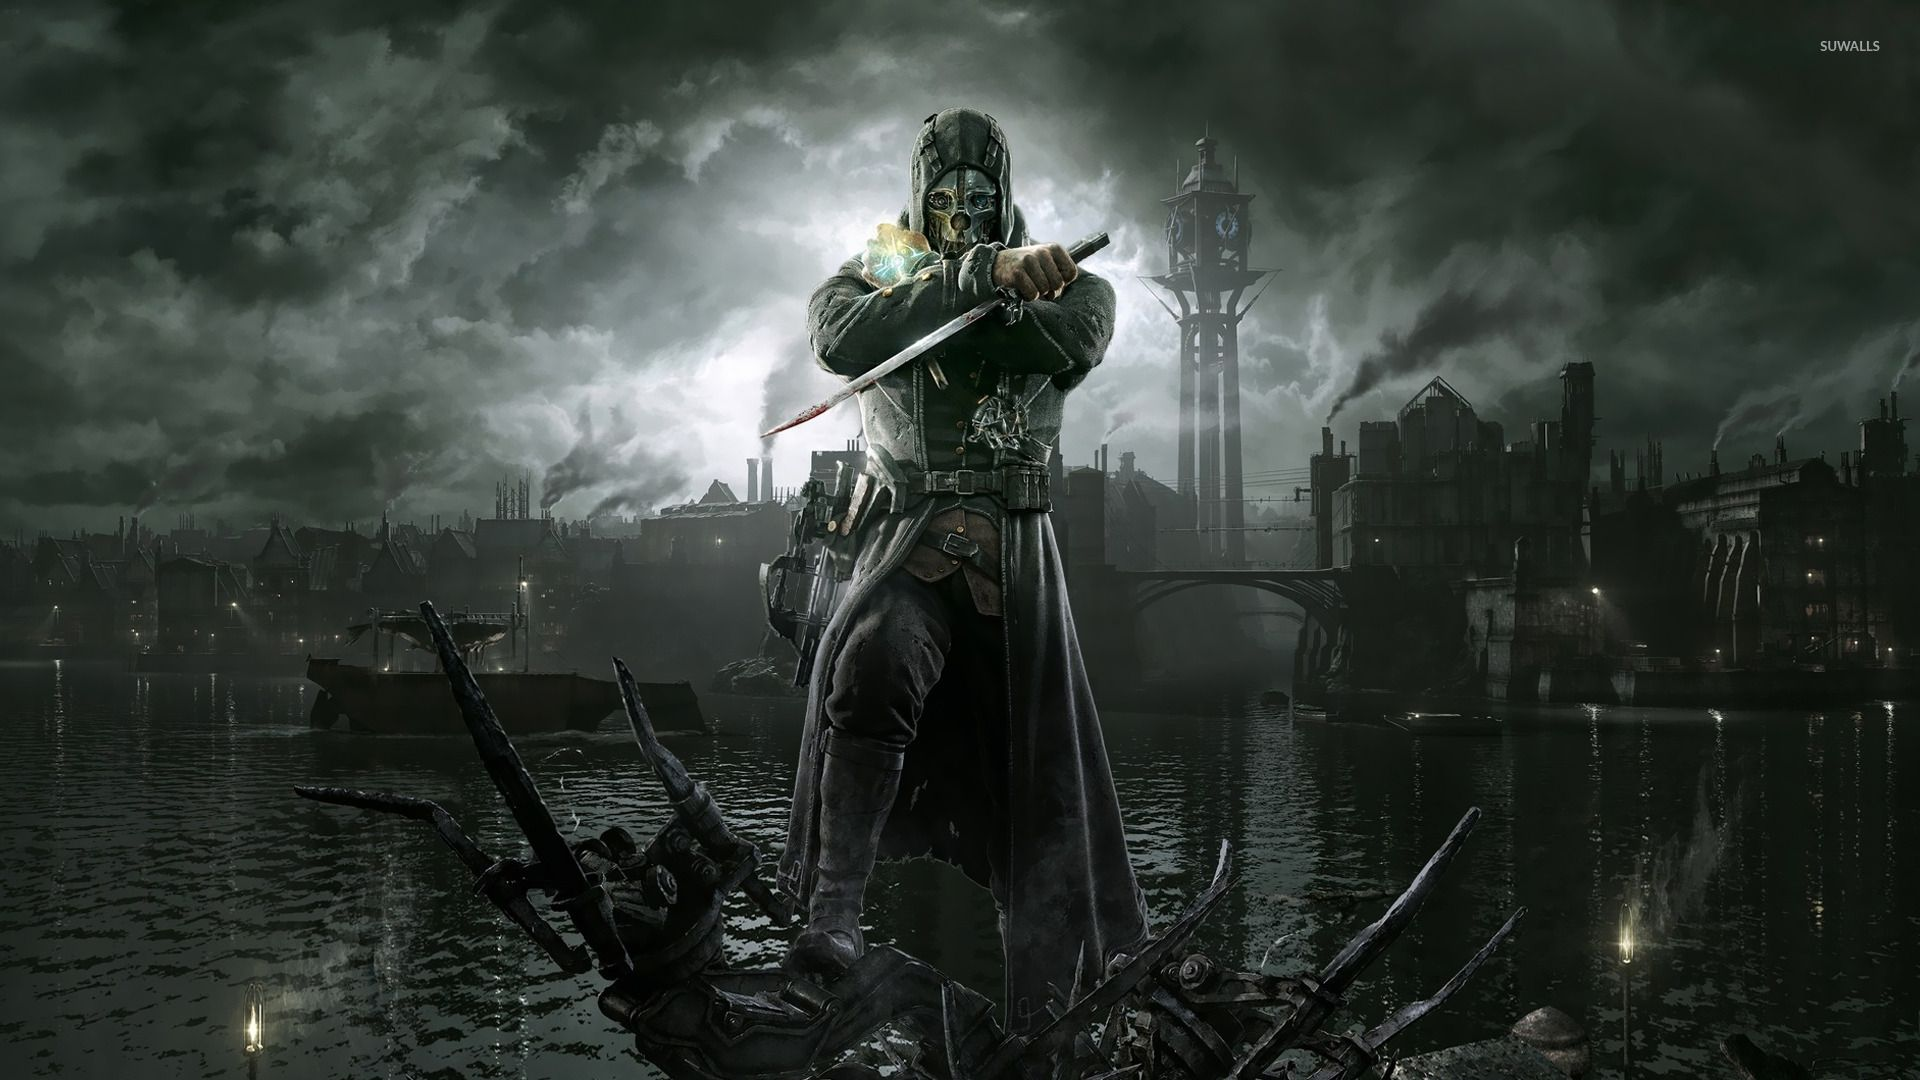 Dishonored Wallpapers - Top Free Dishonored Backgrounds ...